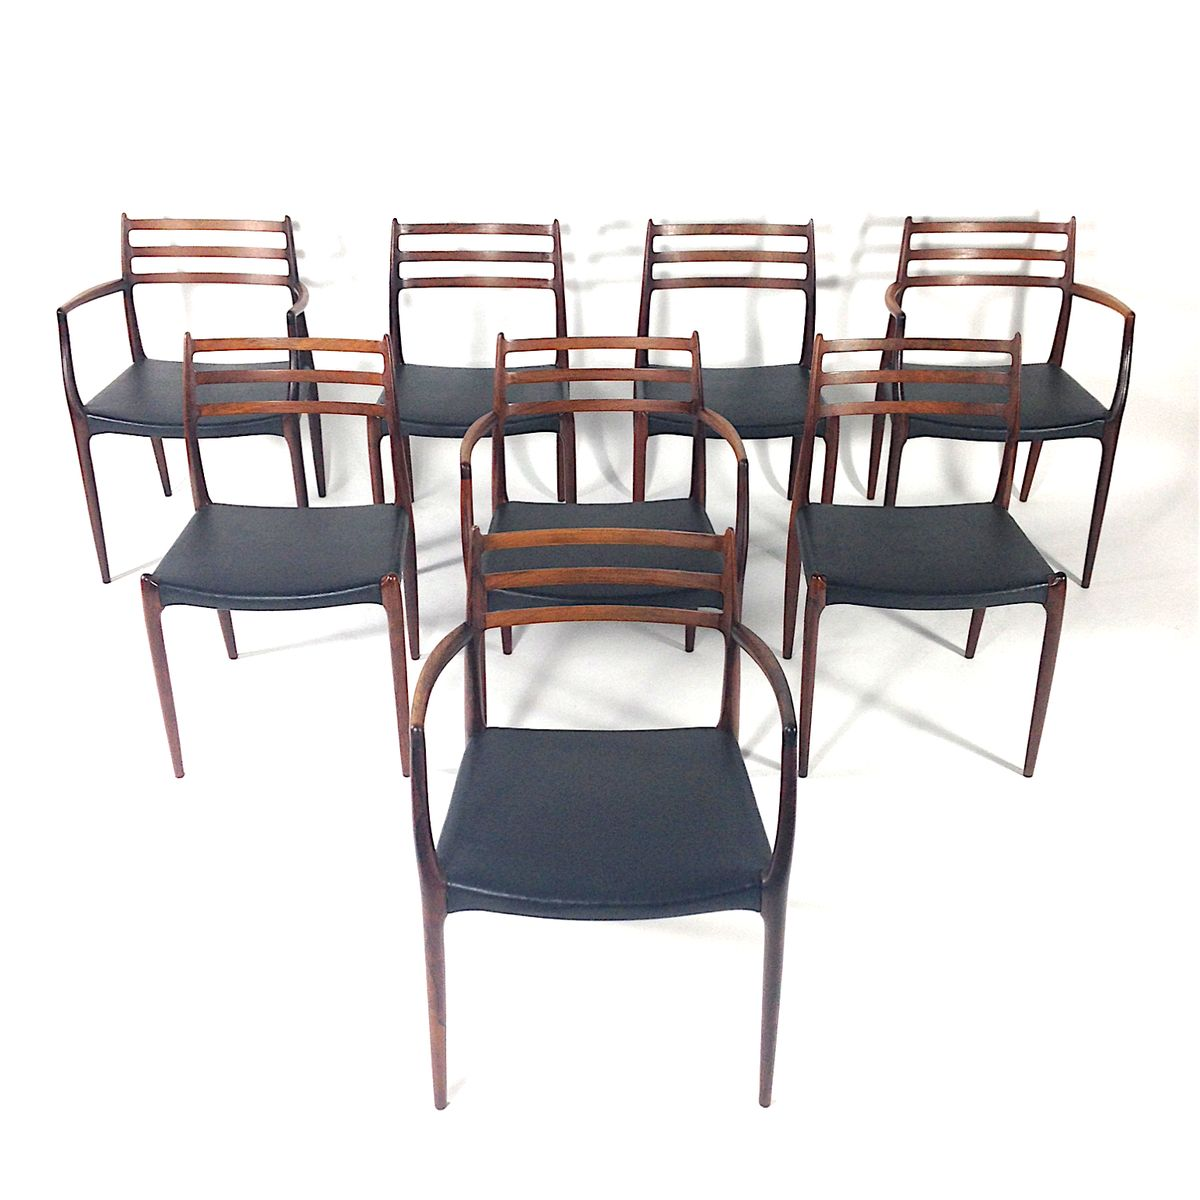 Model rosewood dining chairs by niels o moller